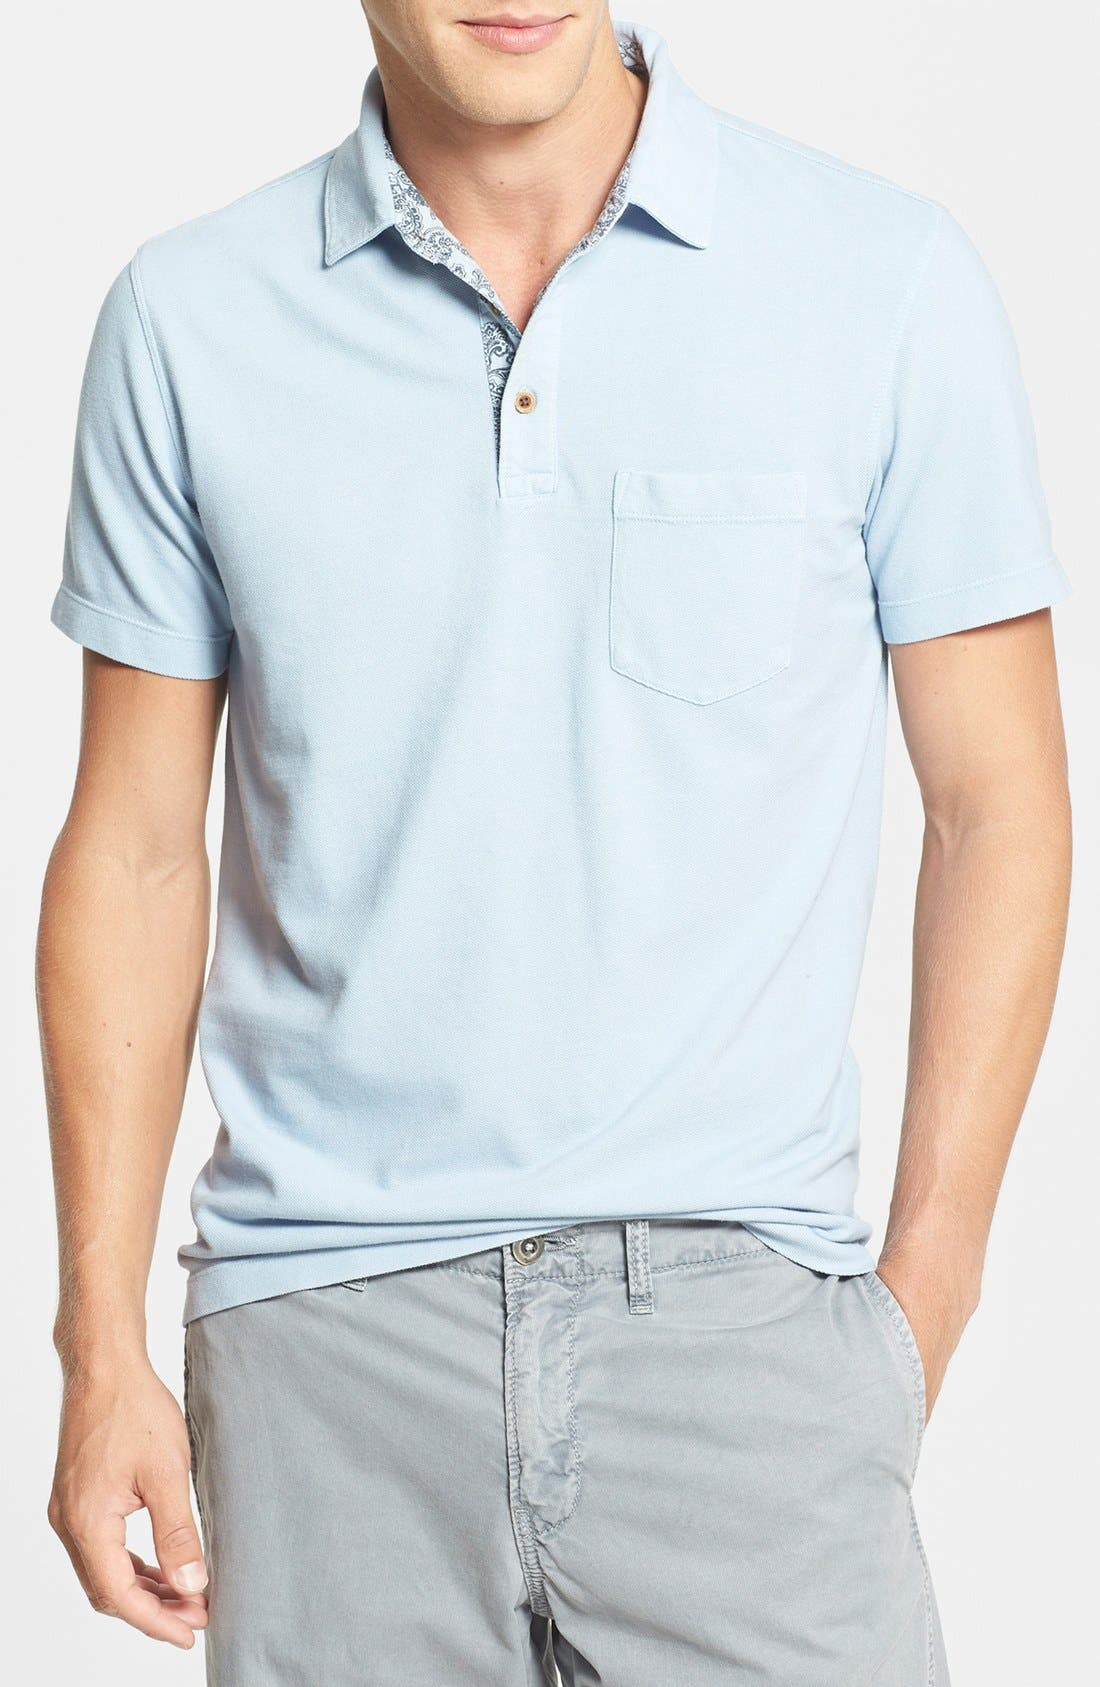 Alternate Image 1 Selected - Tailor Vintage Regular Fit Piqué Cotton Polo